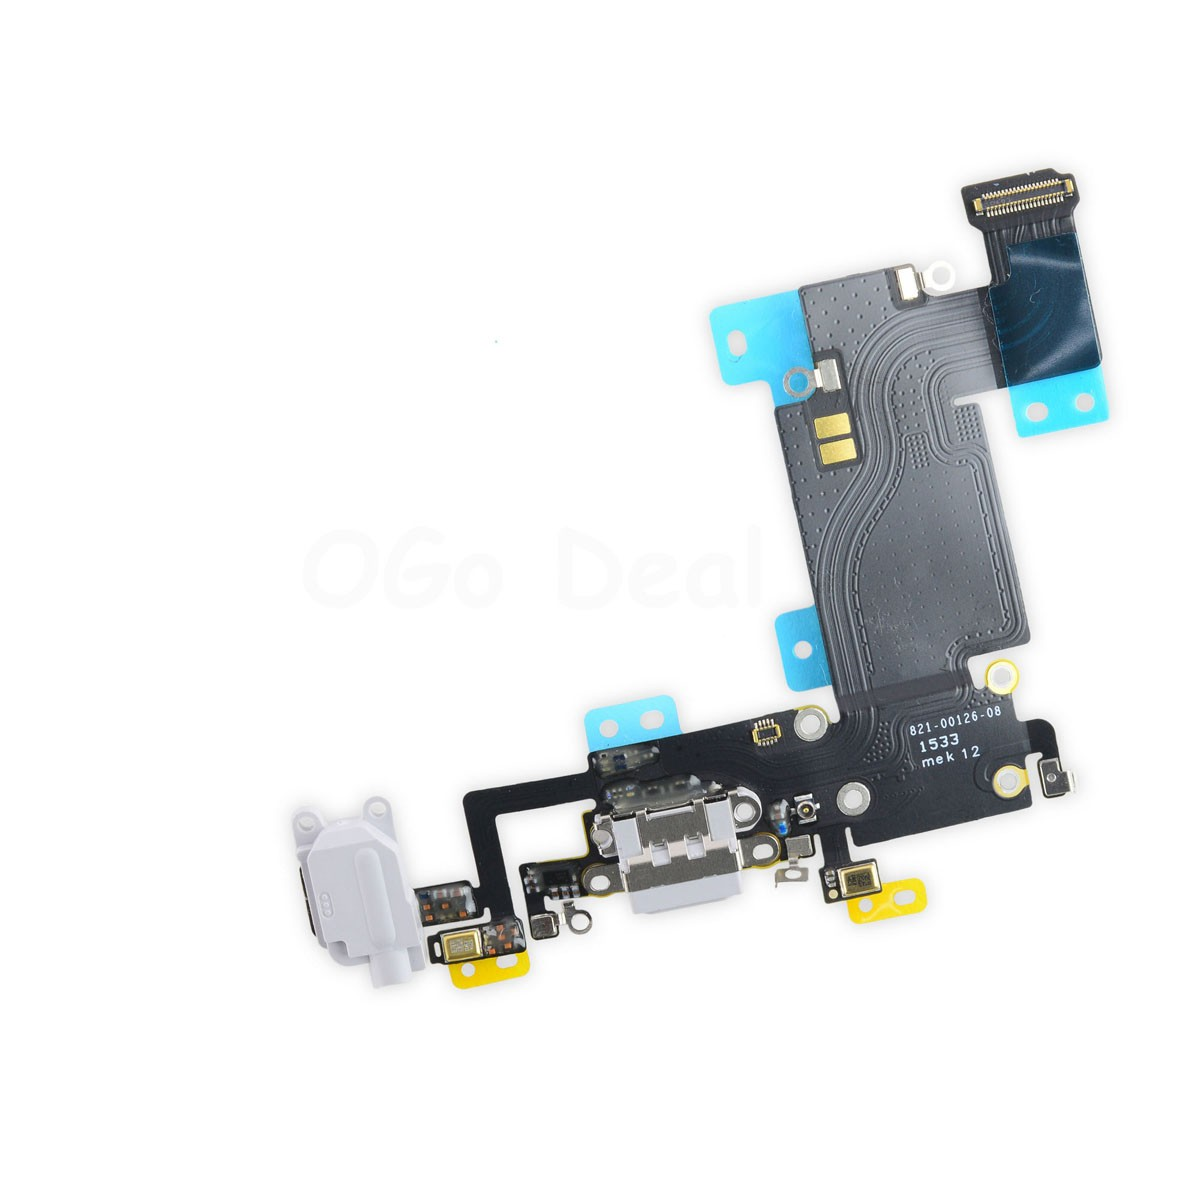 hot sale online 450d3 9ccd4 For Apple iPhone 6S Plus Charging Dock Connector and Headphone Jack Flex  Cable Replacement, High Quality - Light Gray